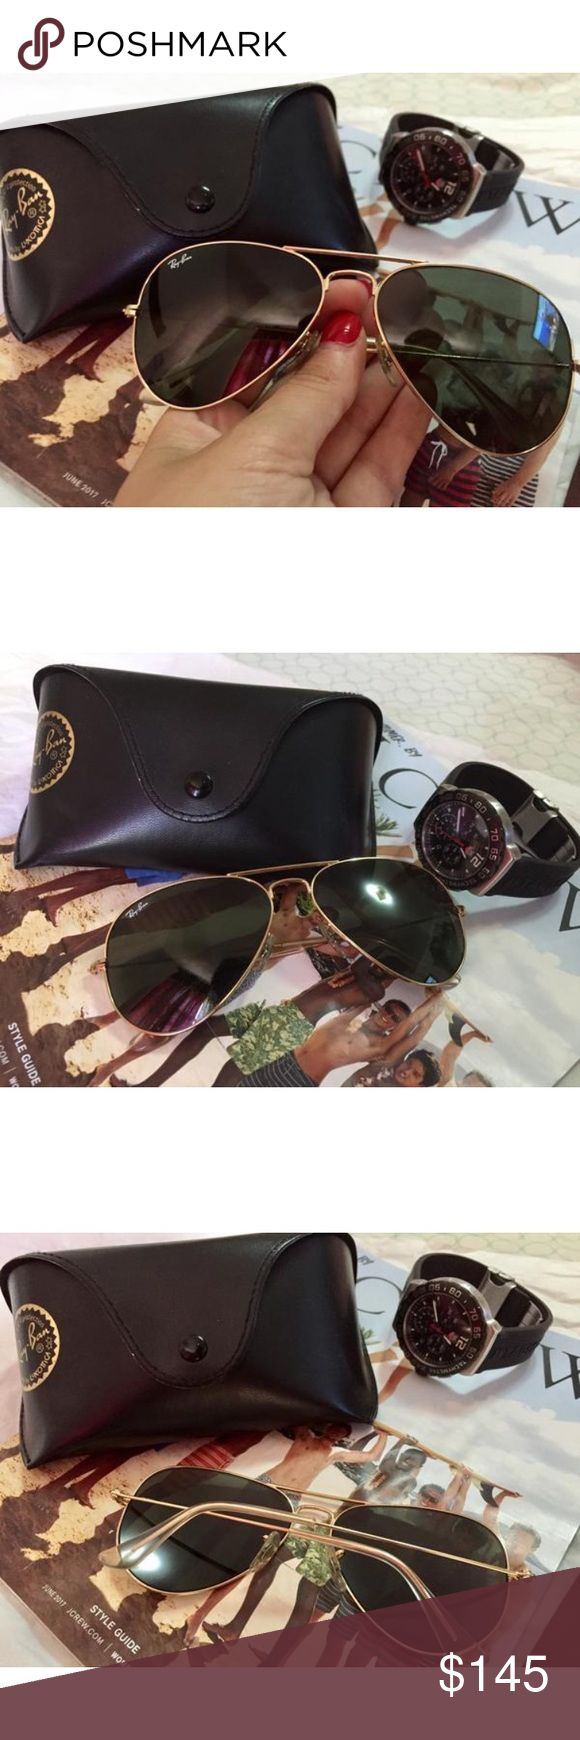 Ray Ban Original Aviator Gold Sunglasses Classic Ray Ban Aviator Glasses. In good condition.Currently one of the most iconic sunglass models in the world, Ray-Ban Aviator Classic sunglasses were originally designed for U.S. aviators in 1937. Aviator Classic sunglasses are a timeless model that combines great aviator styling with exceptional quality, performance and comfort. Pouch and case included. Ray-Ban Accessories Sunglasses